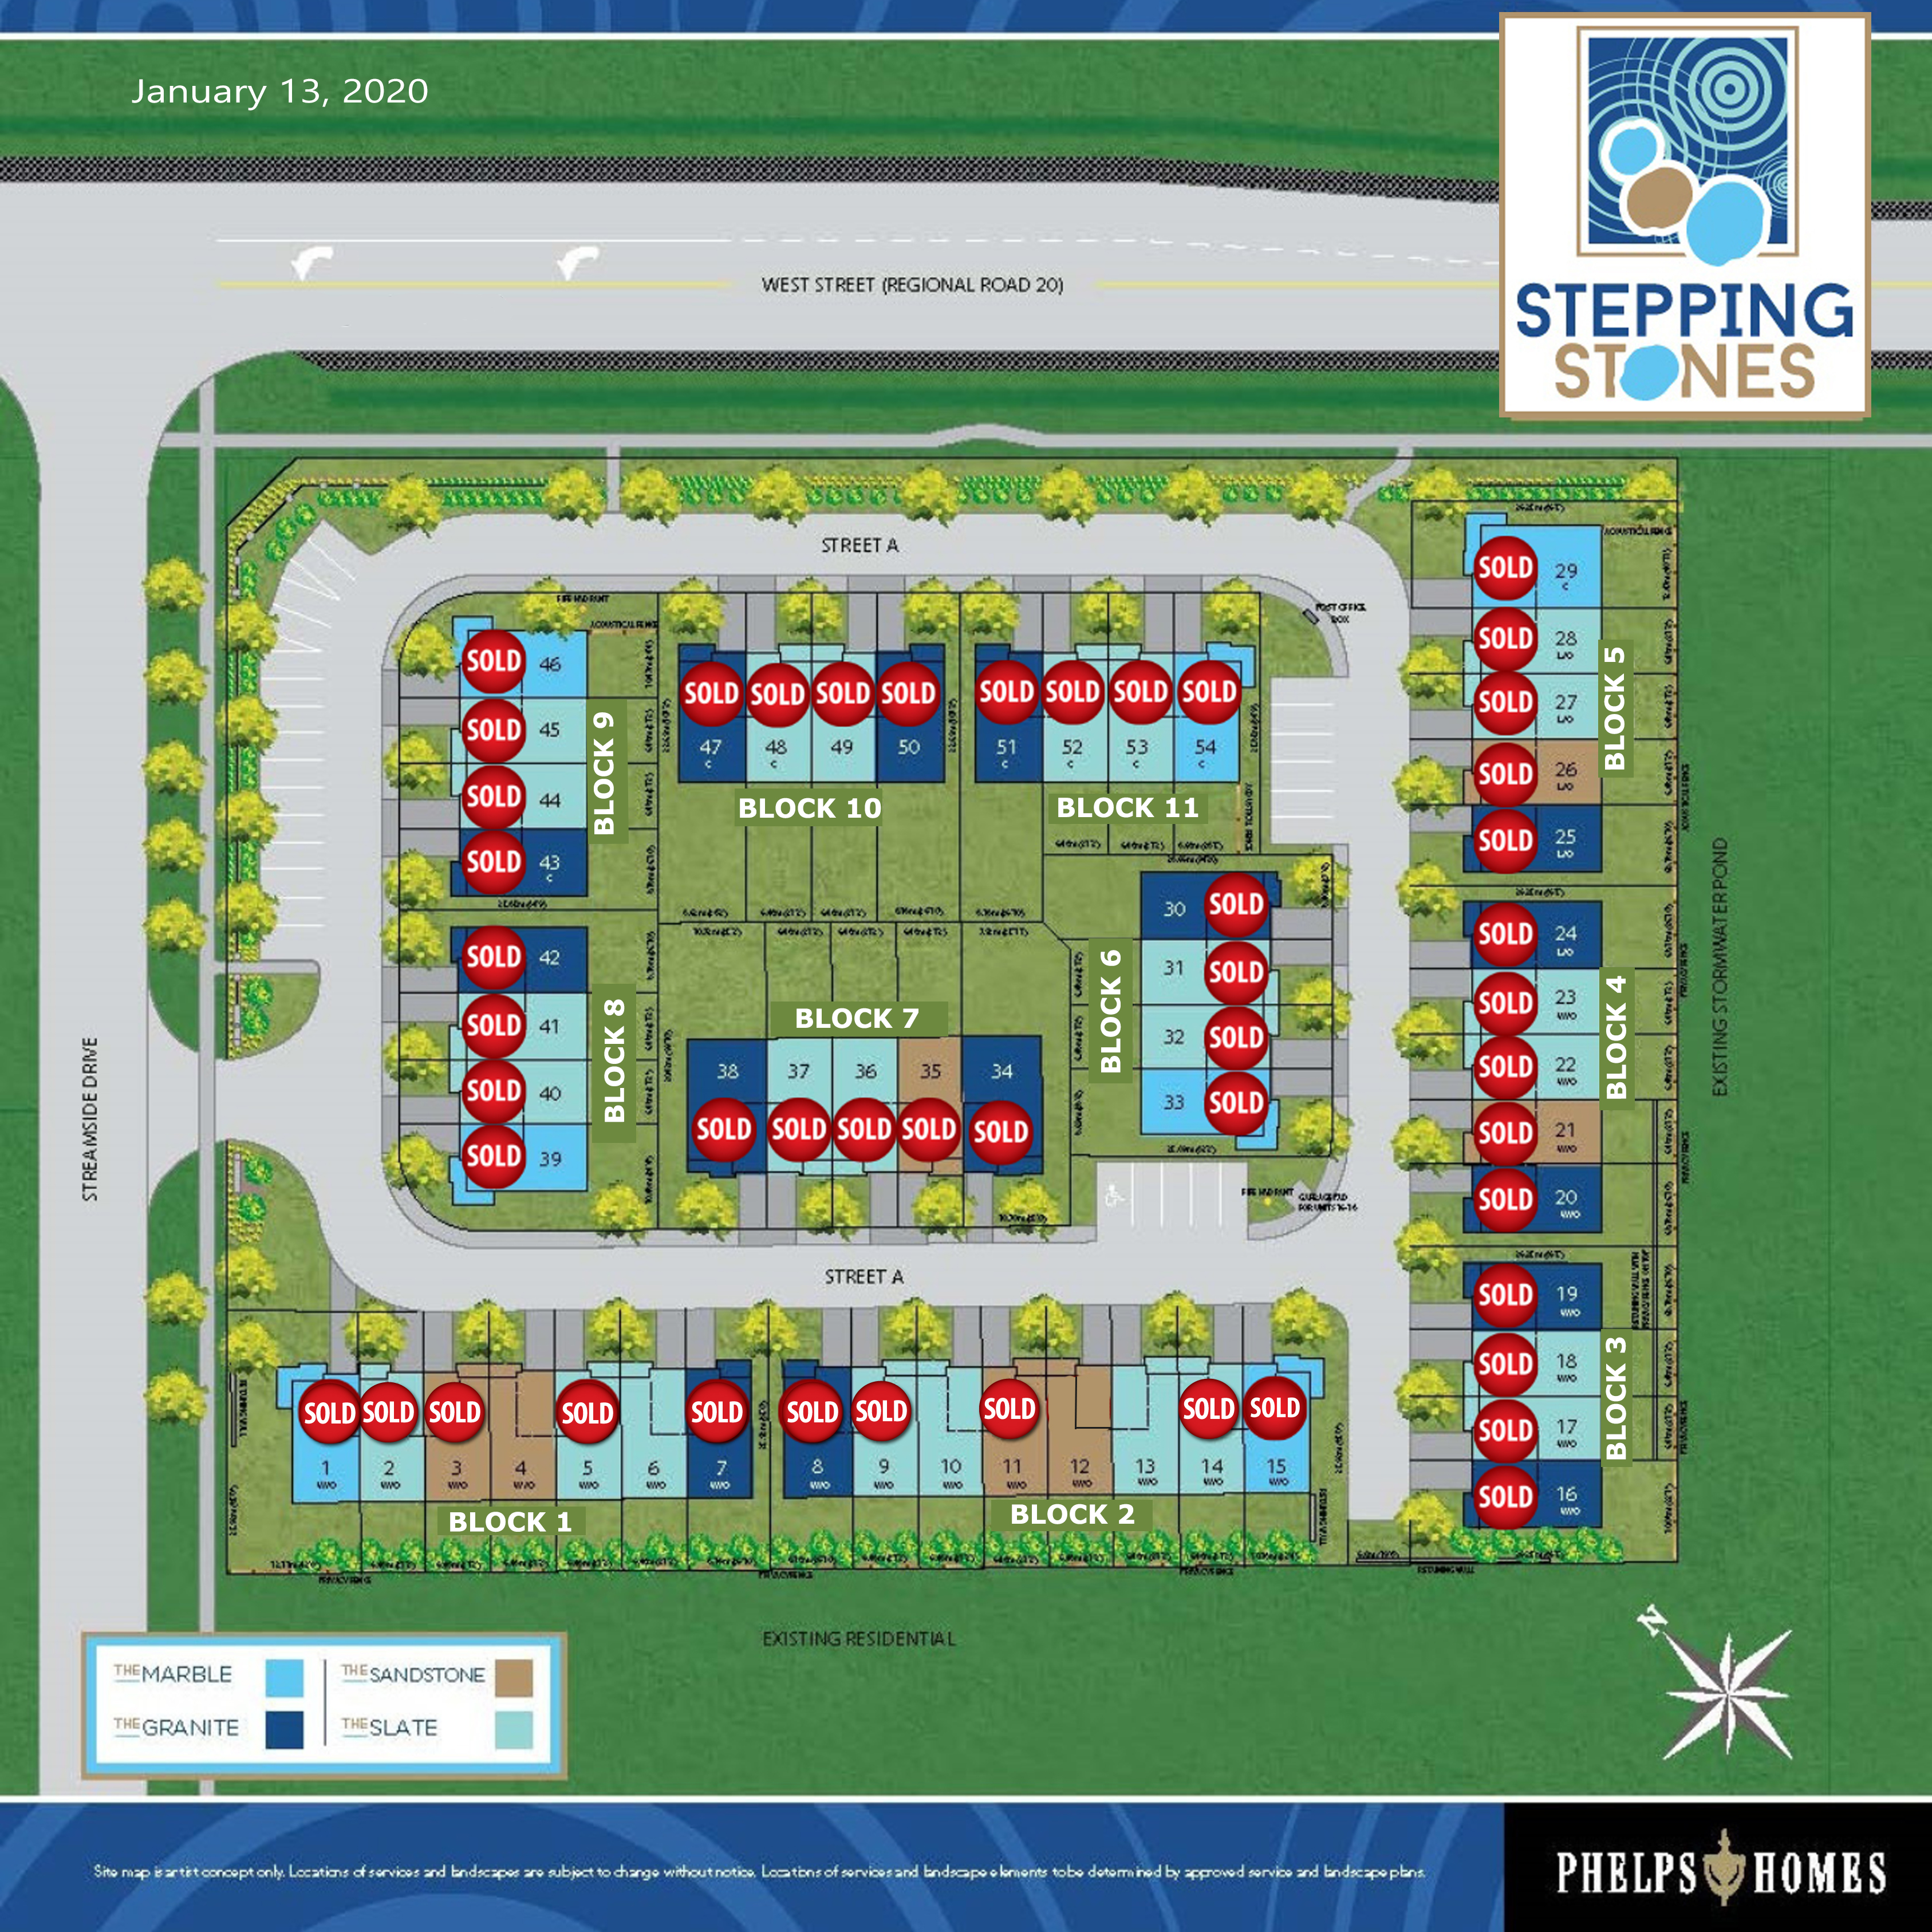 Stepping Stones Site Plan - 01.13